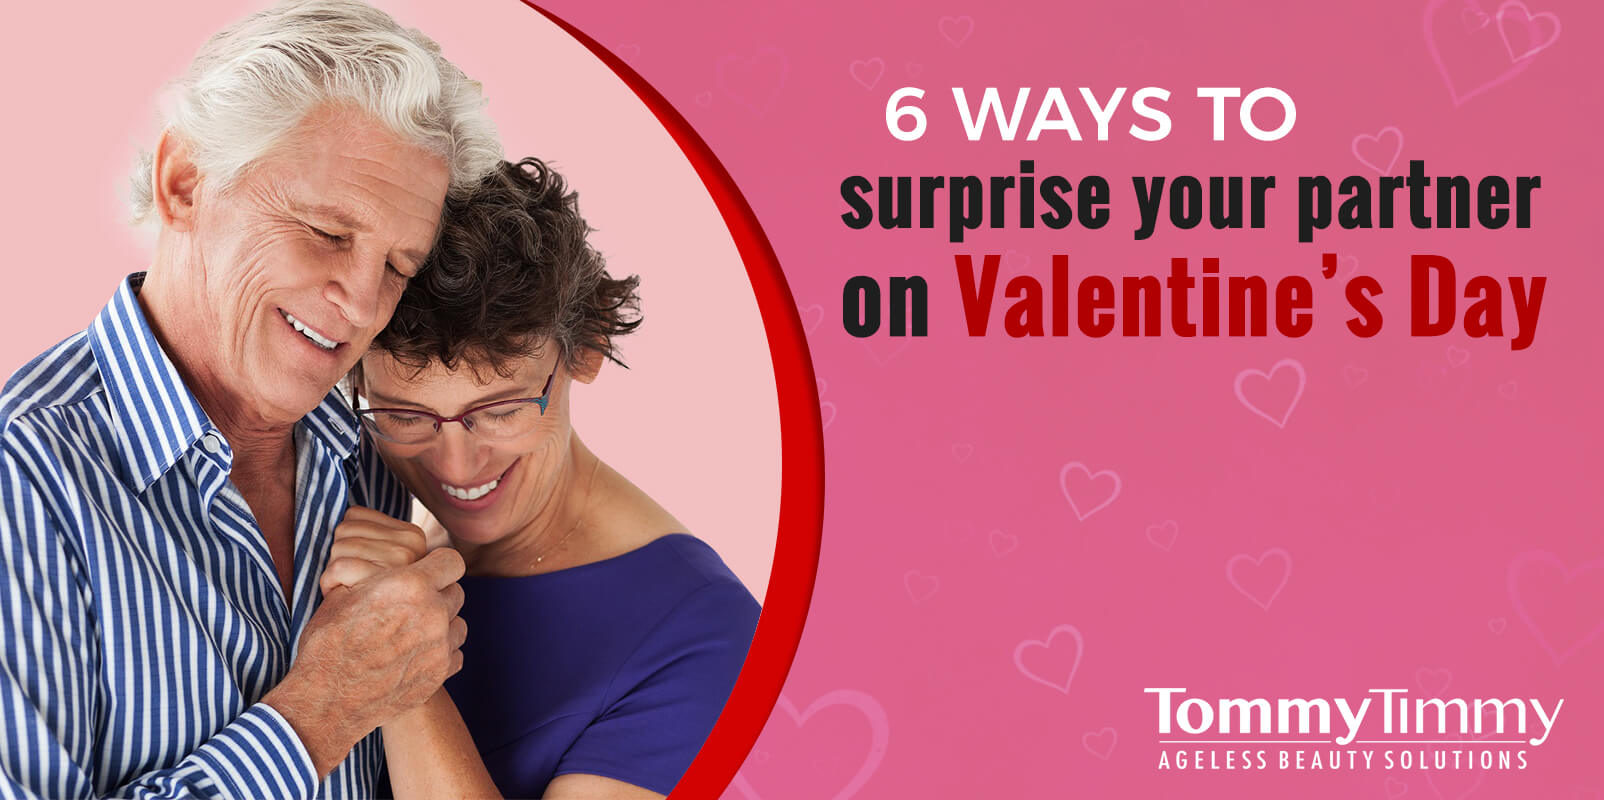 6 ways to surprise your partner on Valentine's Day